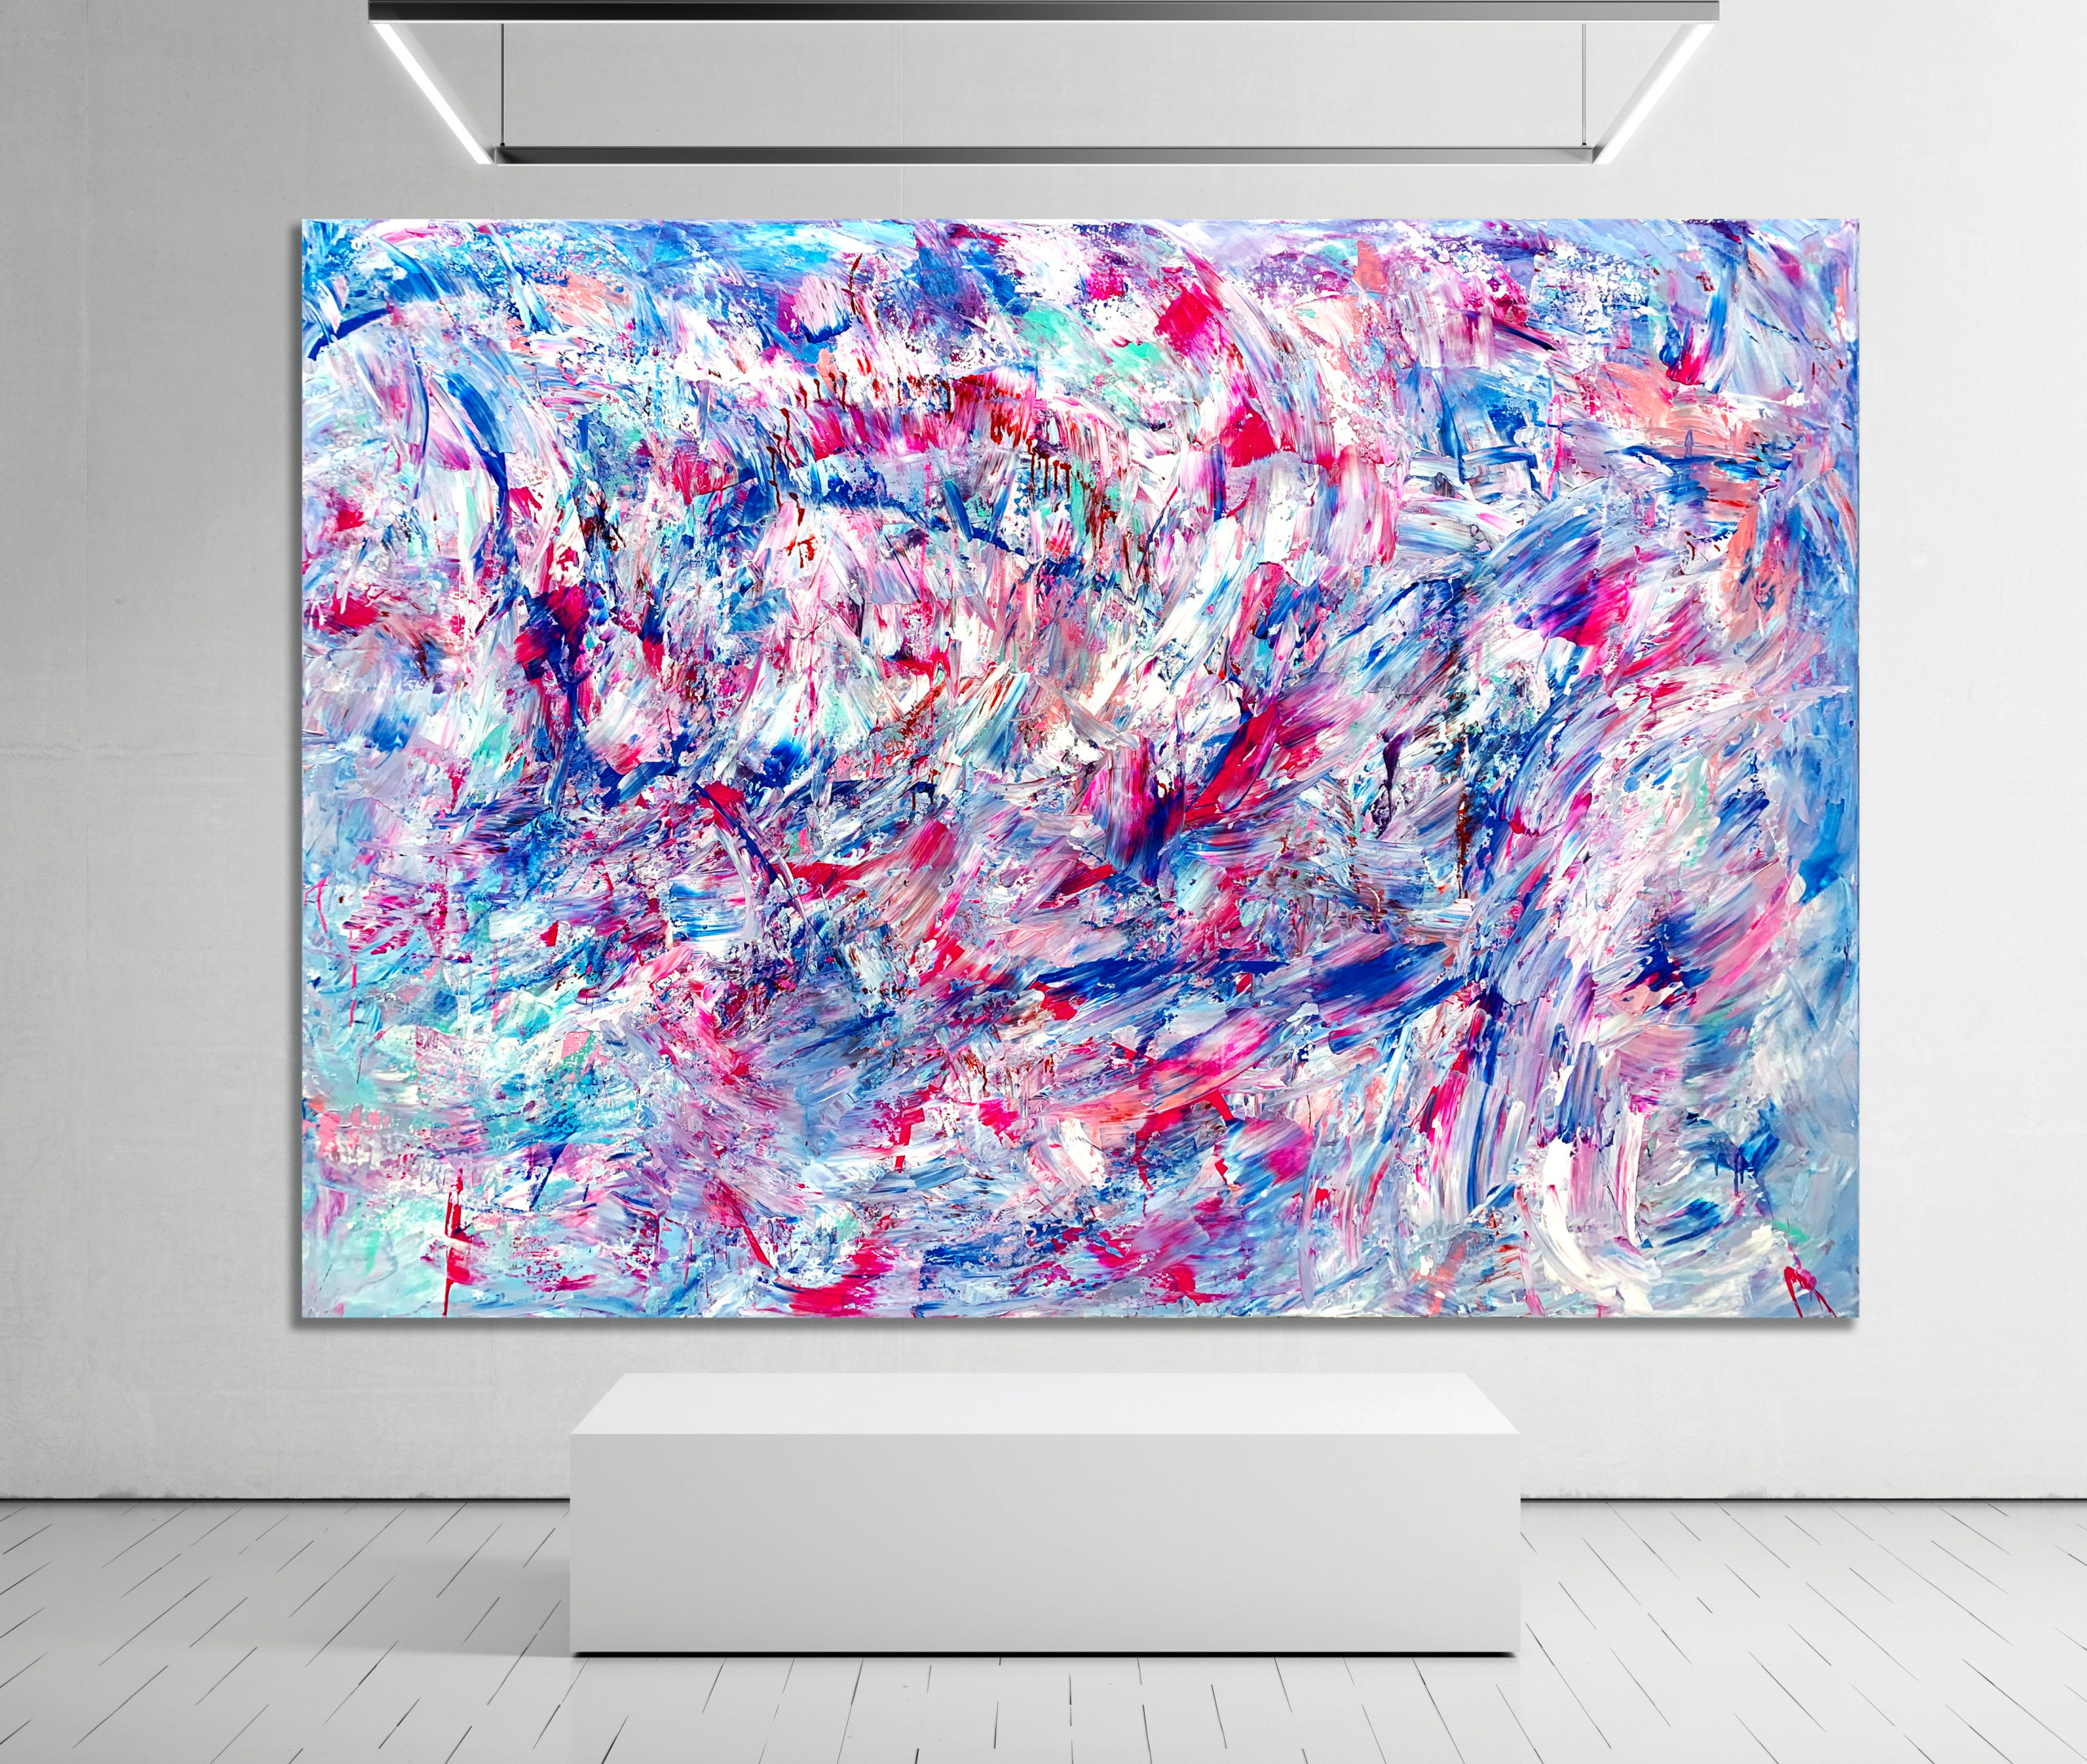 Exclusion Zone - Abstract Expressionism by Estelle Asmodelle